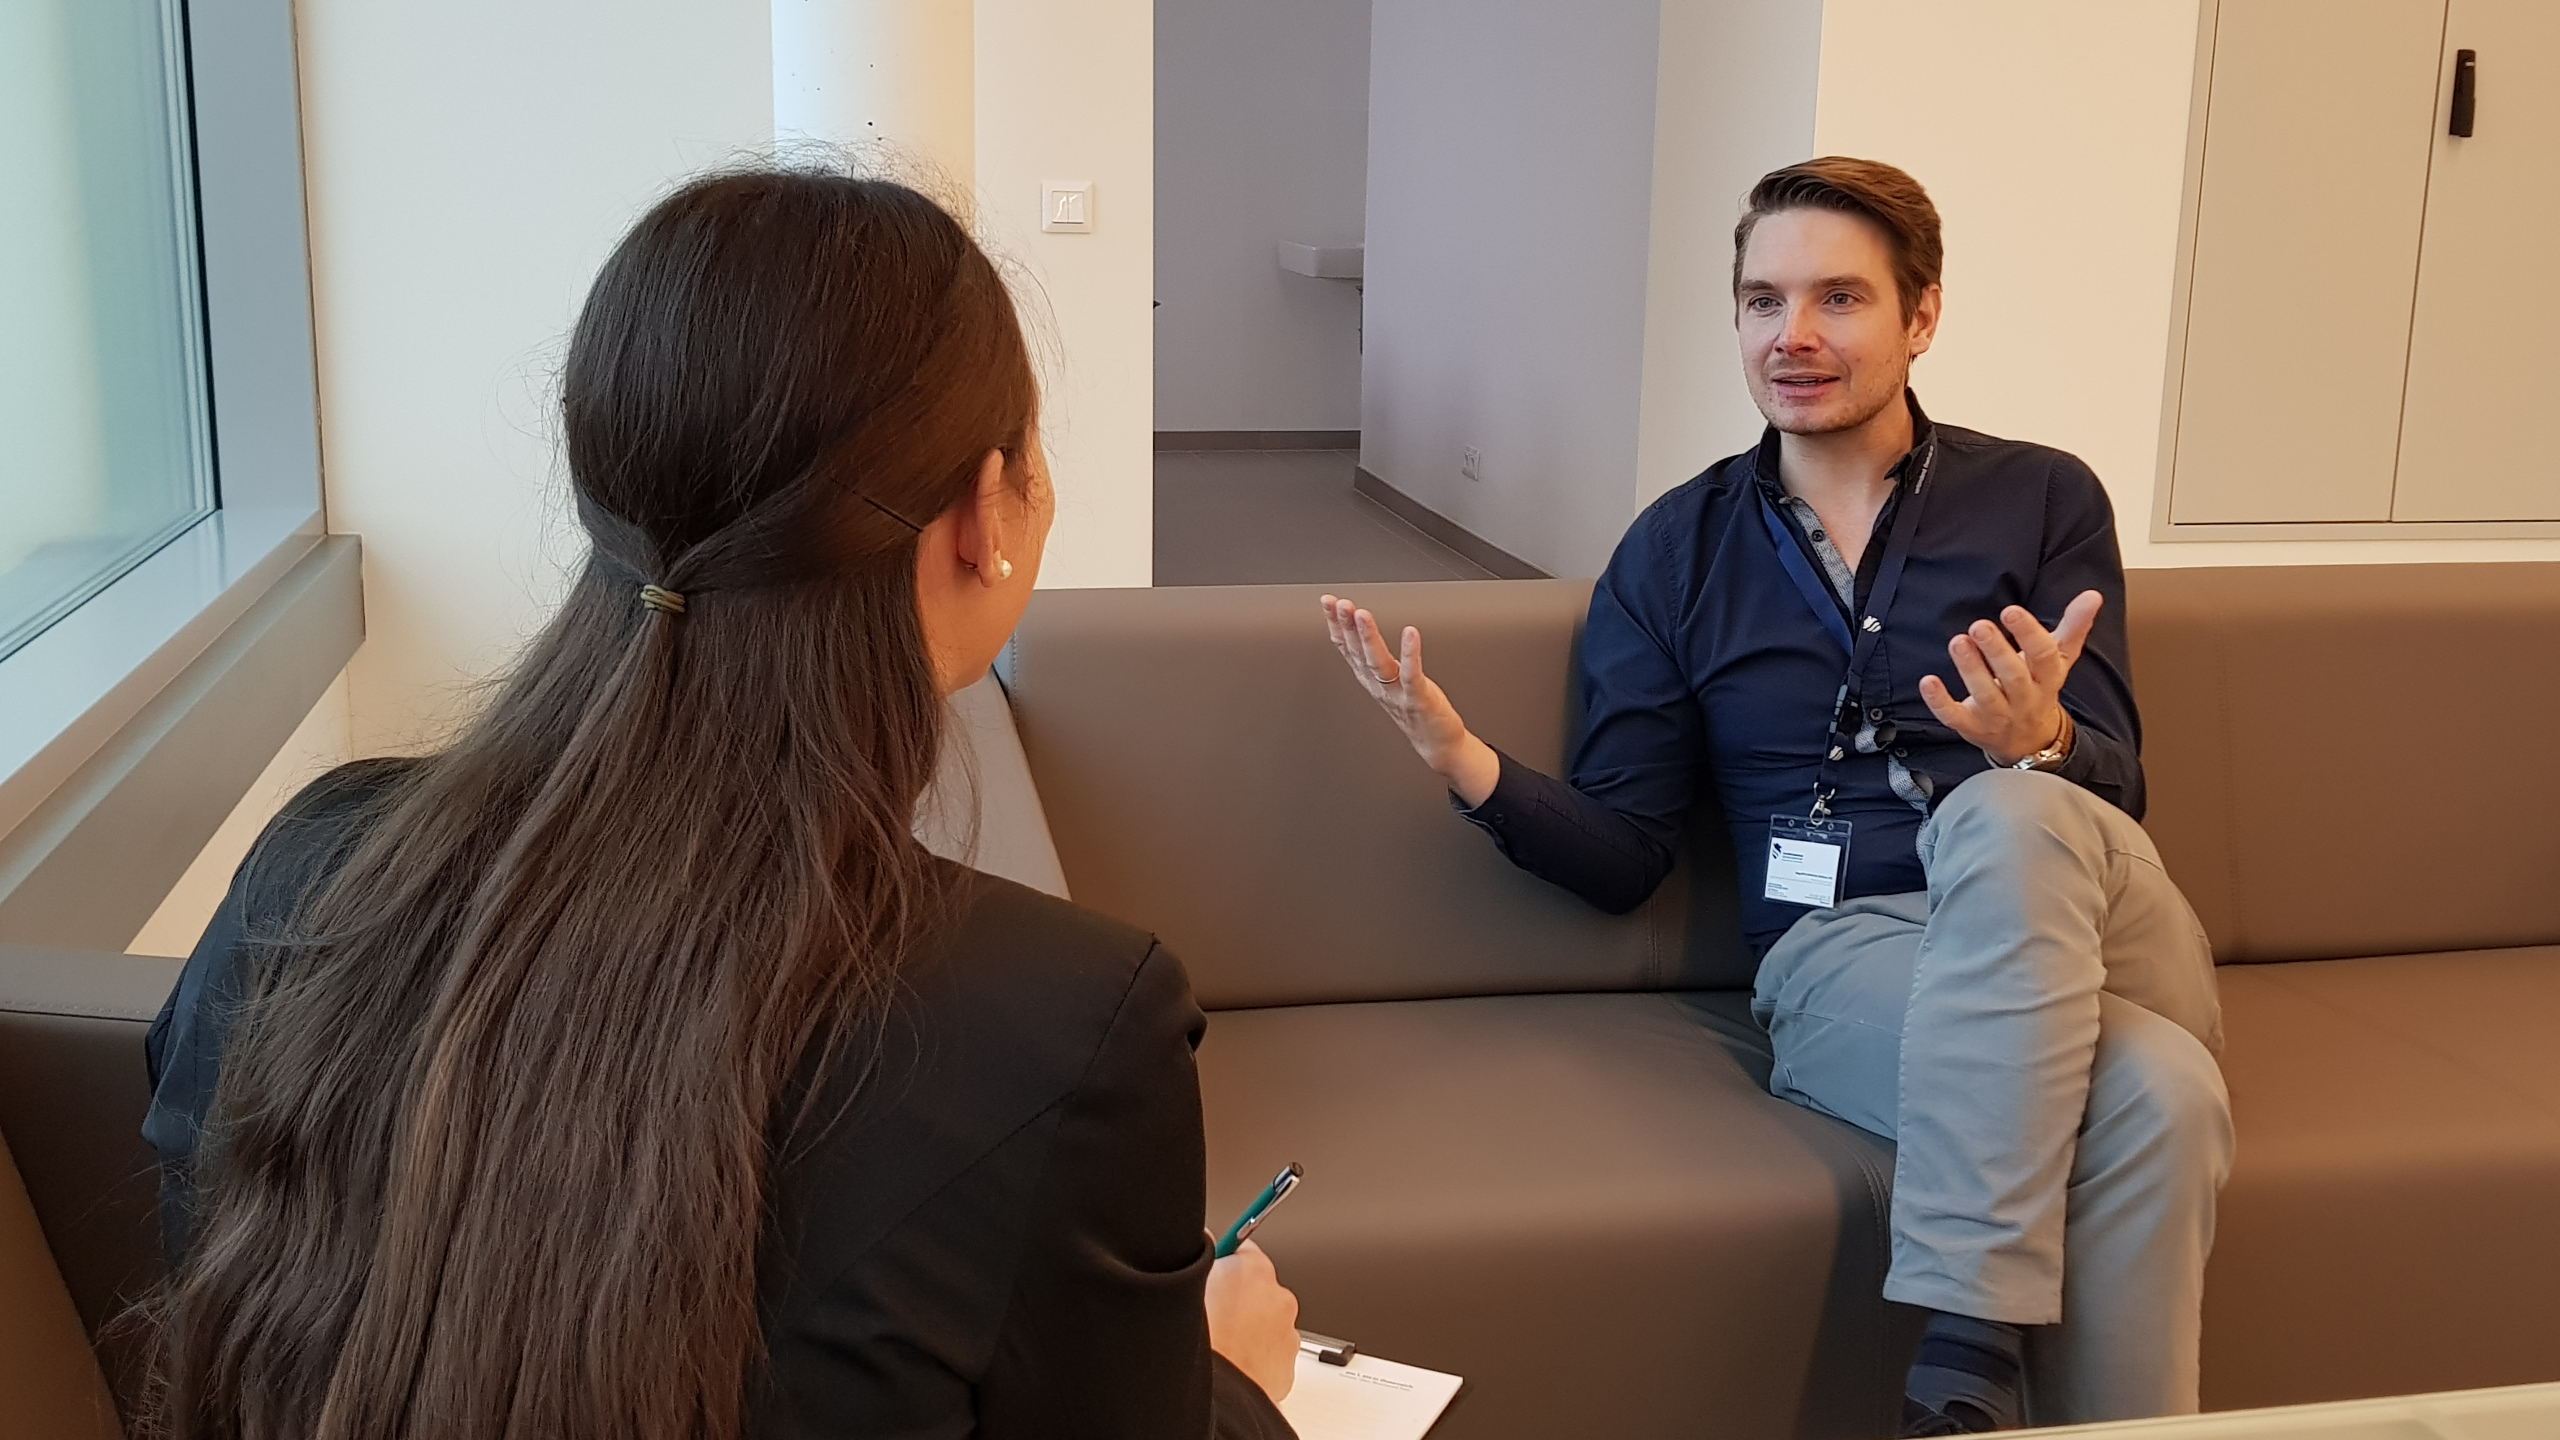 Johannes reiterer in Interview with ESC Team